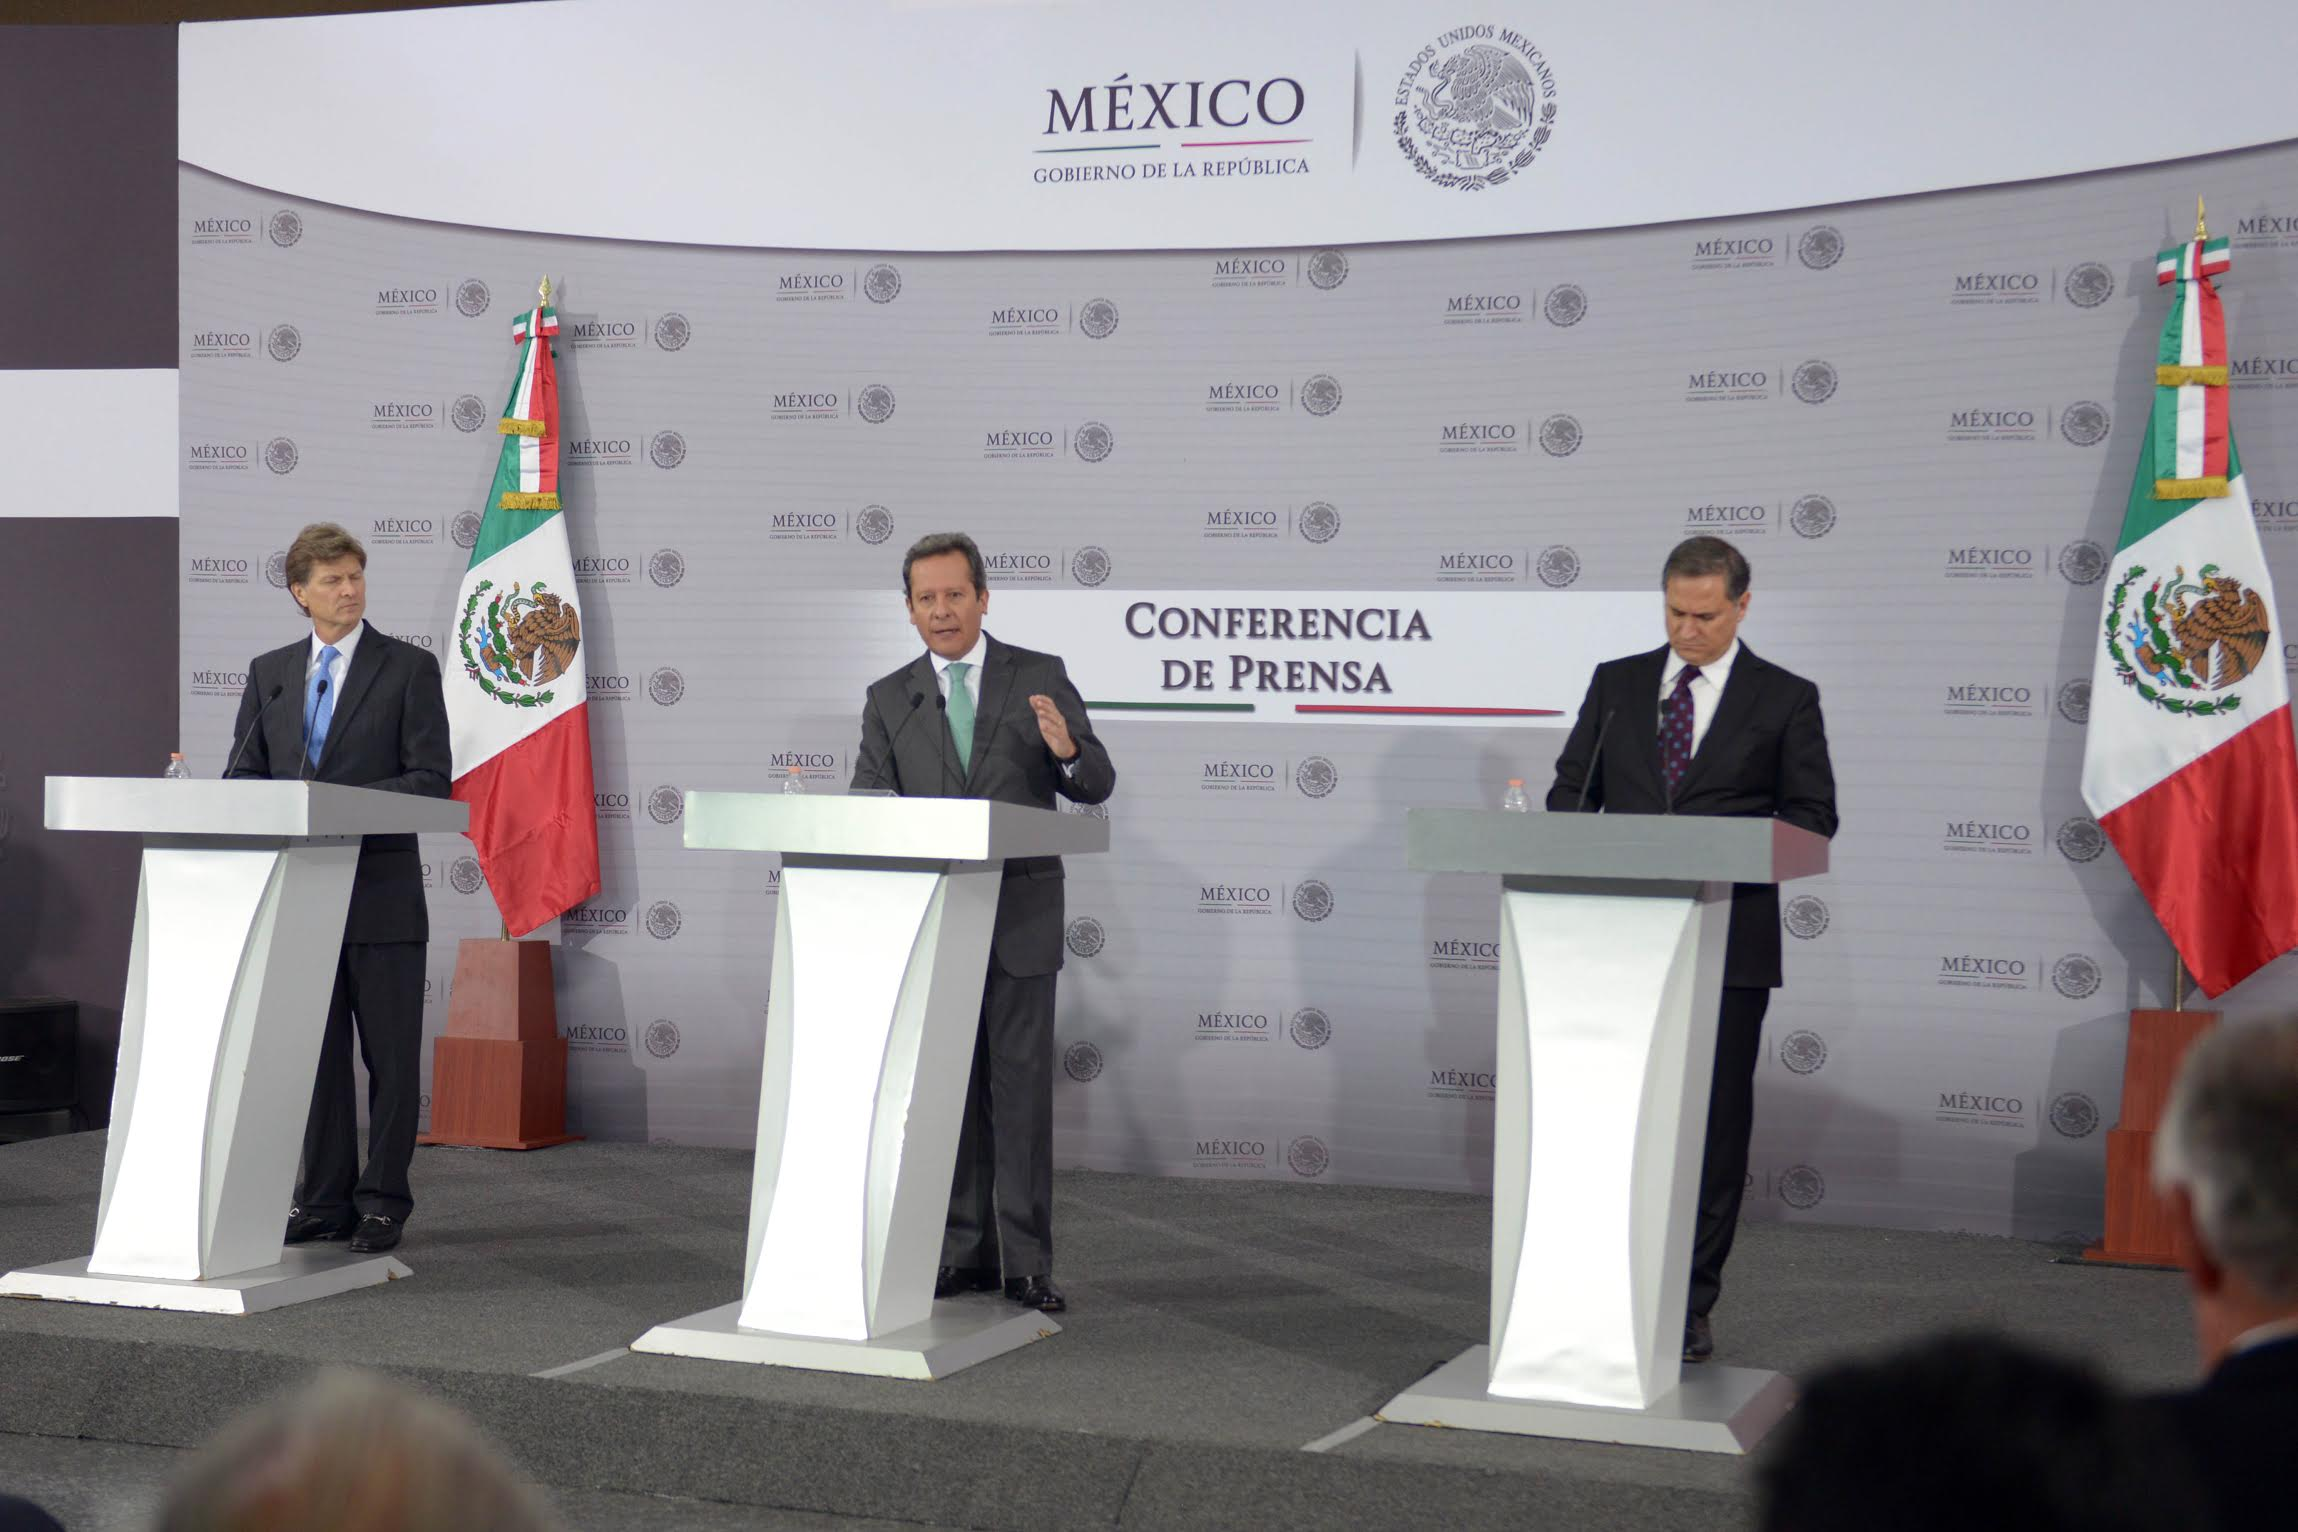 Press Conference with General Coordinator of Social Communication of the President's Office Eduardo Sánchez; Minister of Tourism Enrique de la Madrid and President of the International Entertainment Corporation Alejandro Soberón.